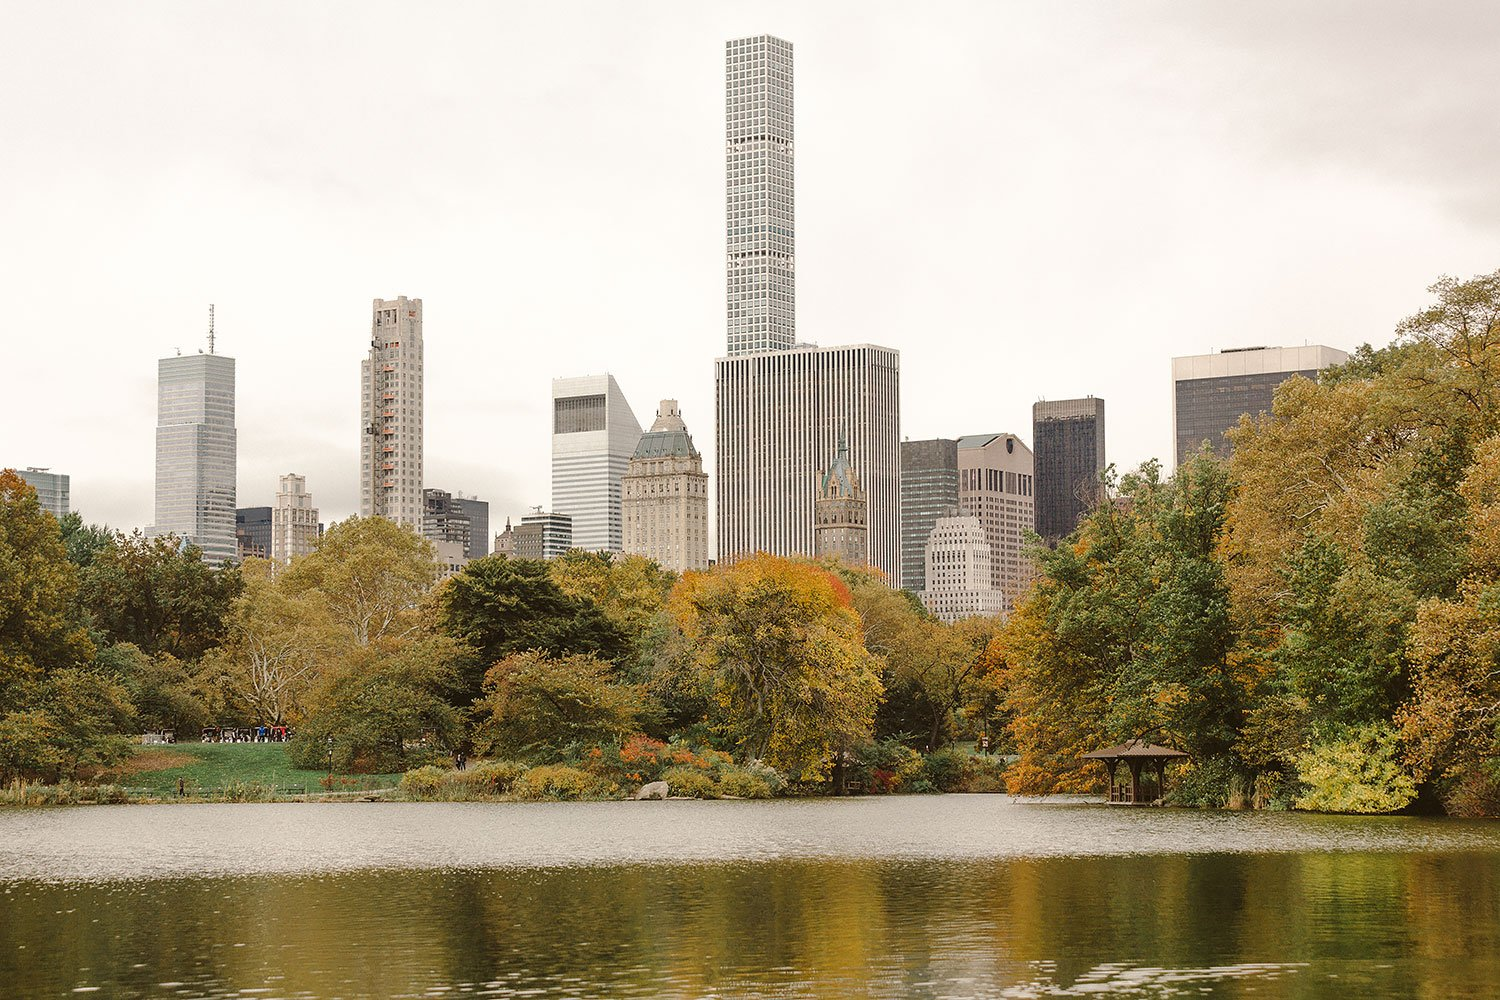 central park reservoir in new york city